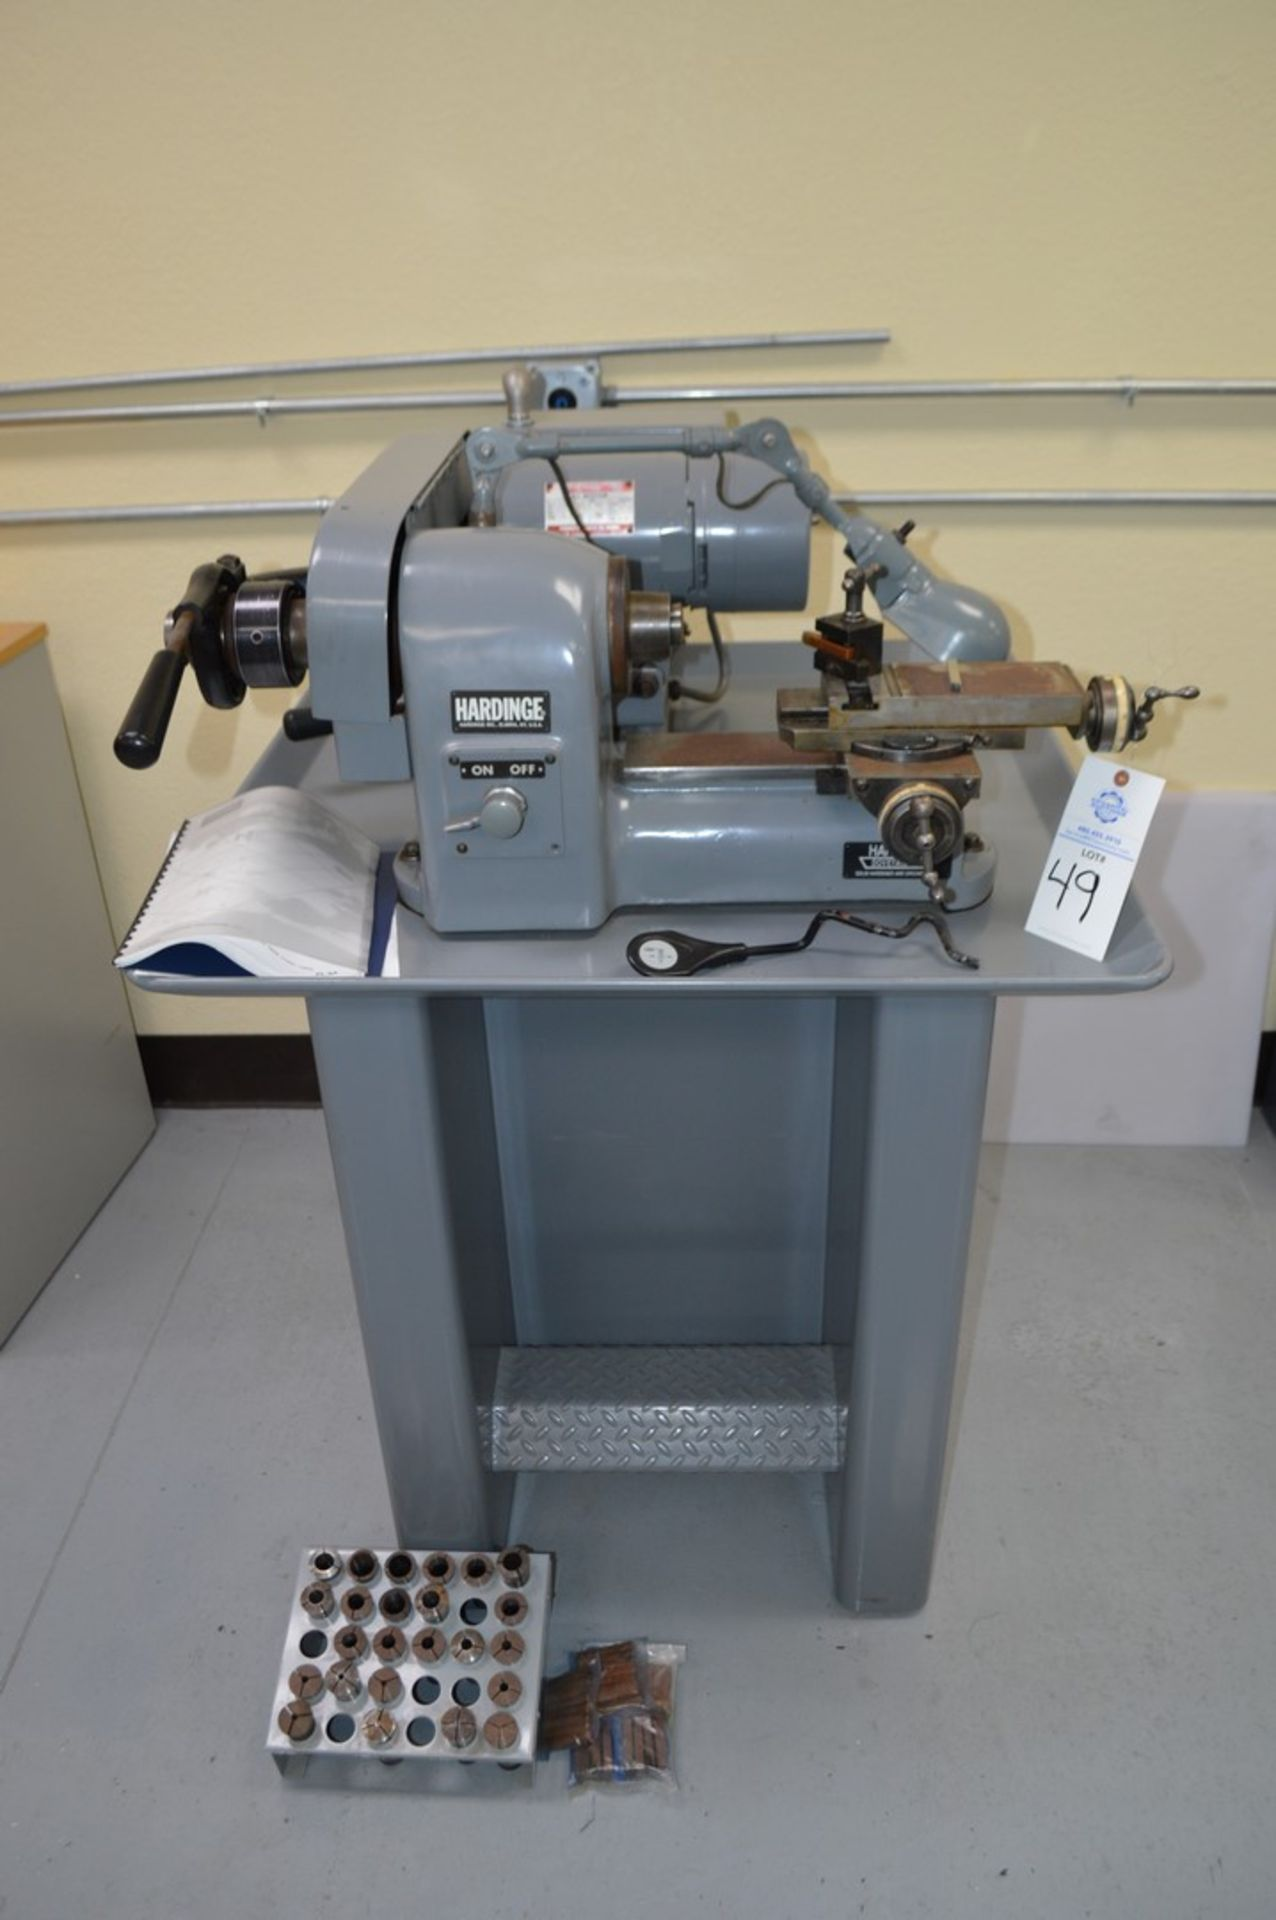 Hardinge HSL-Five Nine Super Precison Speed Lathe with collets and tooling,5c collet nose, dovetail